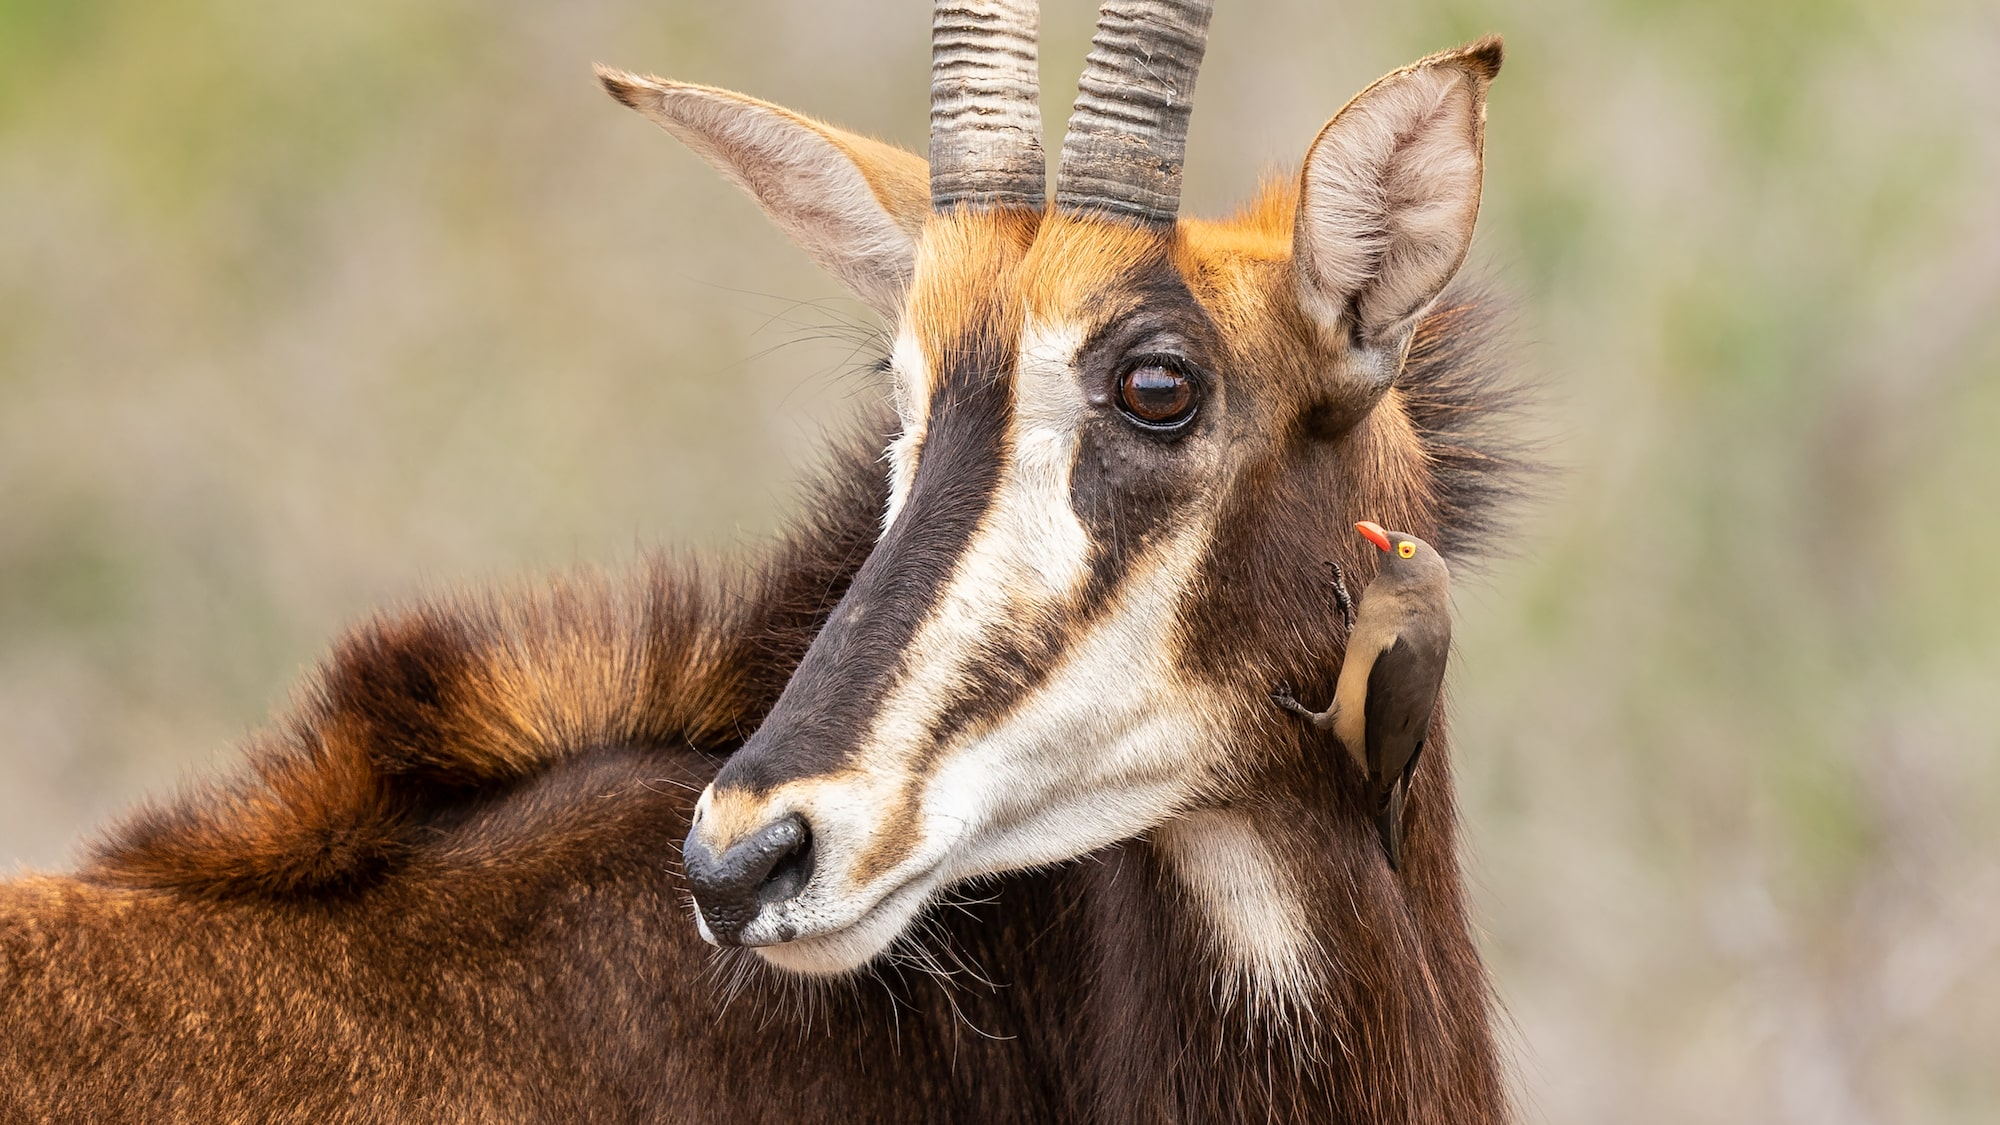 Sable antelope in the safari